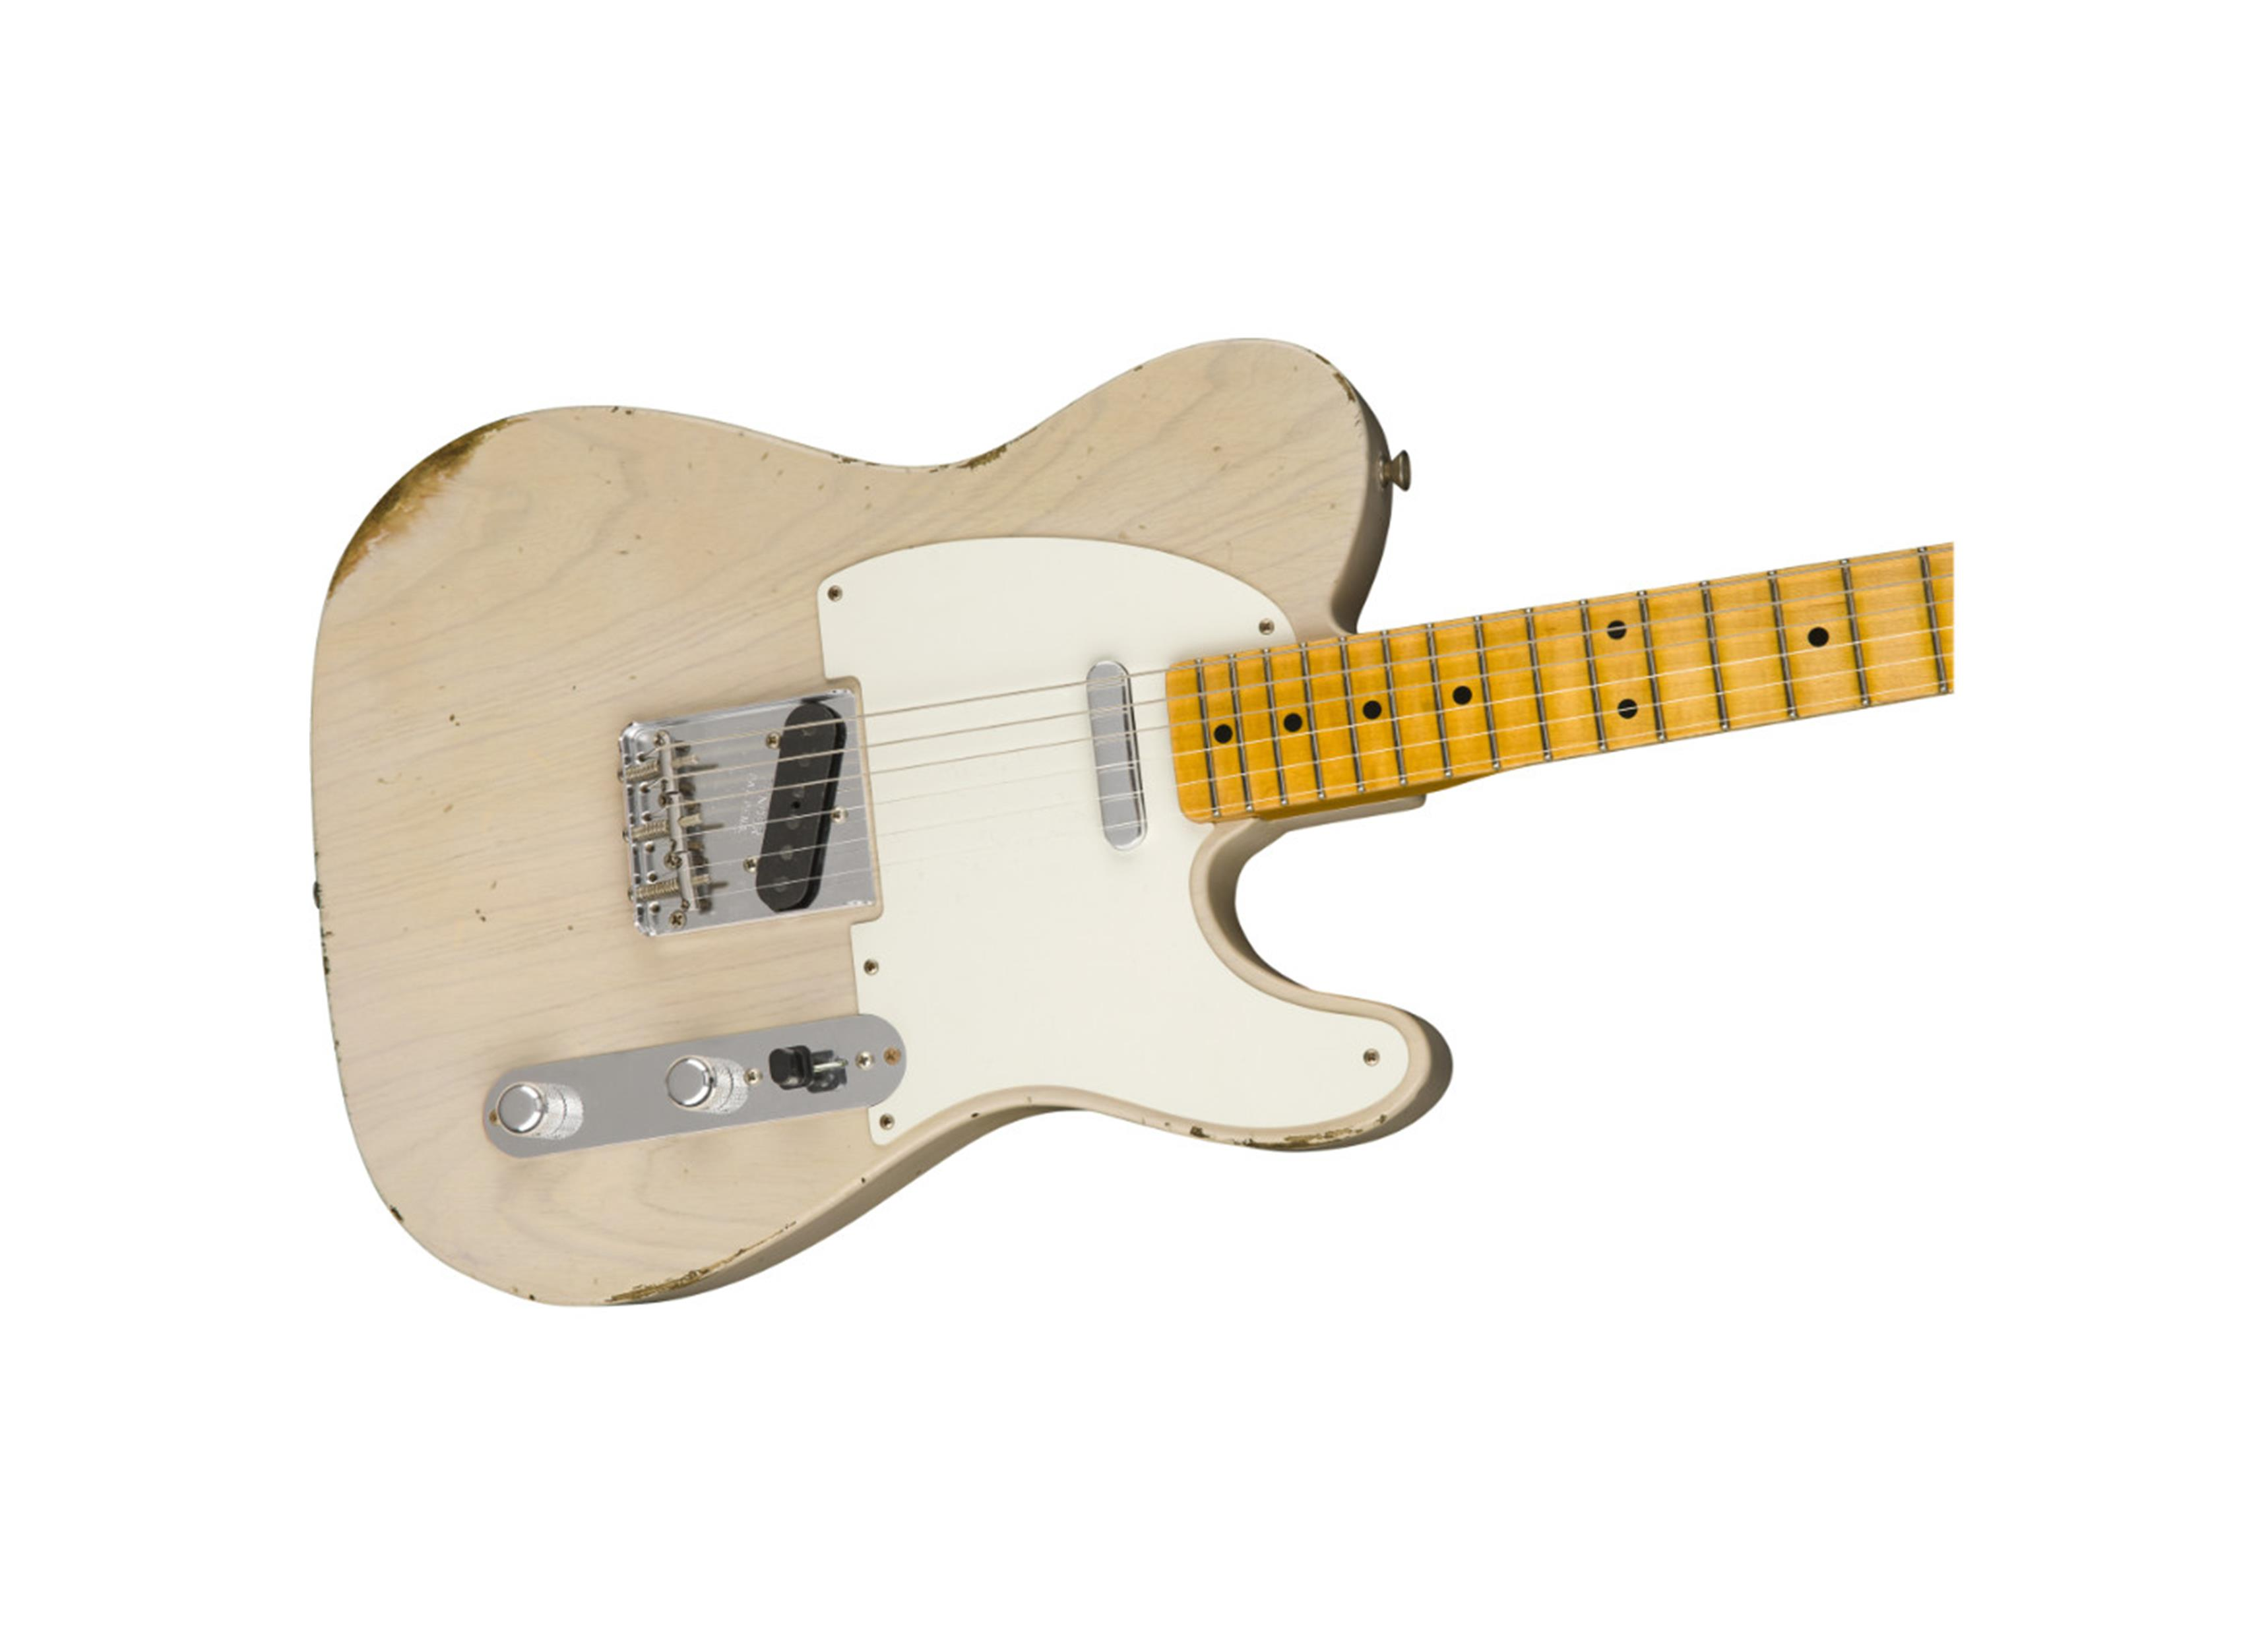 FENDER CUSTOM SHOP 1954 Telecaster Relic MN Aged White Blonde  9235000526